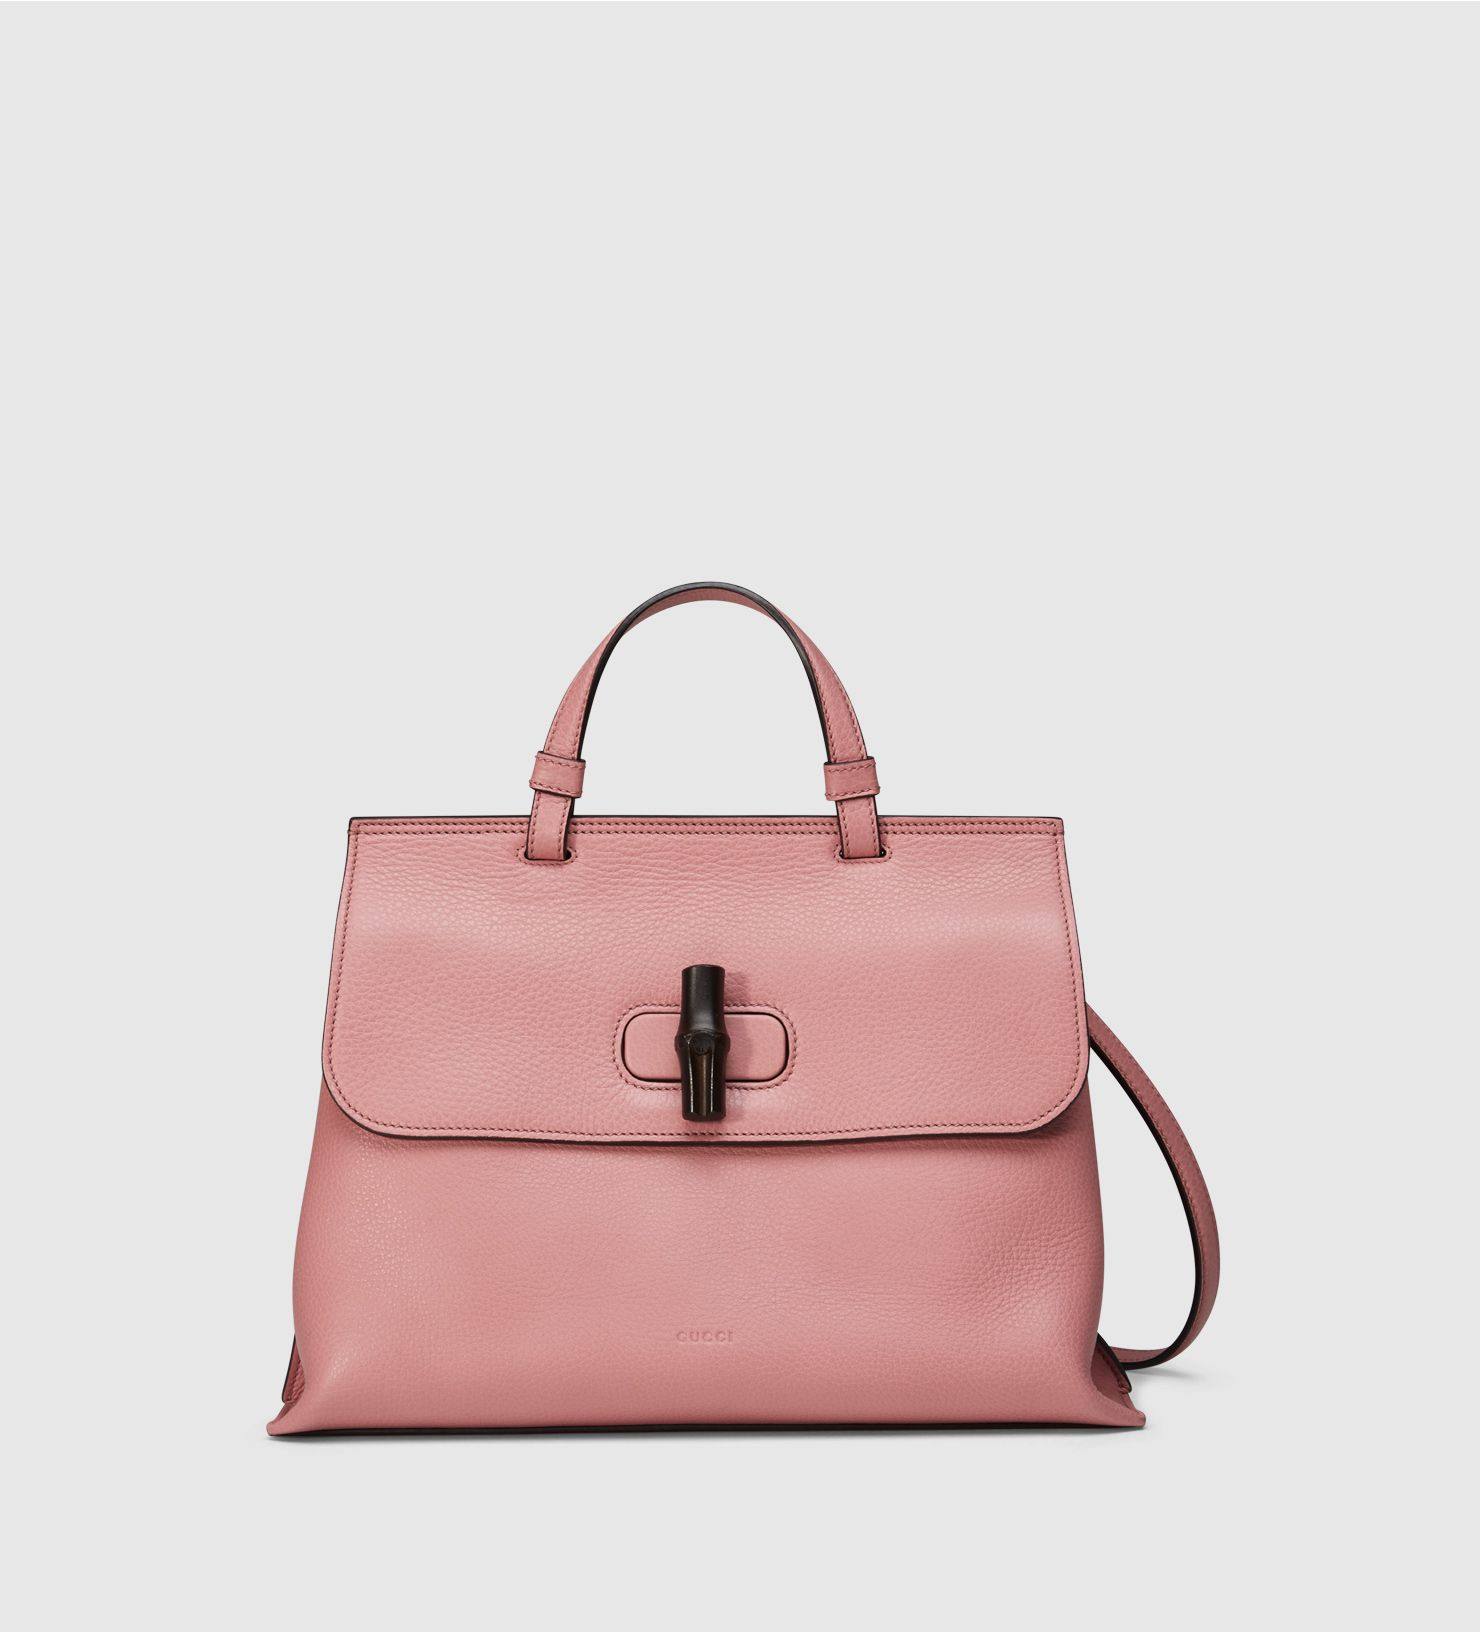 Bamboo Daily Leather Top Handle Bag   Gucci Loves   Gucci, Bags ... f4b50921624